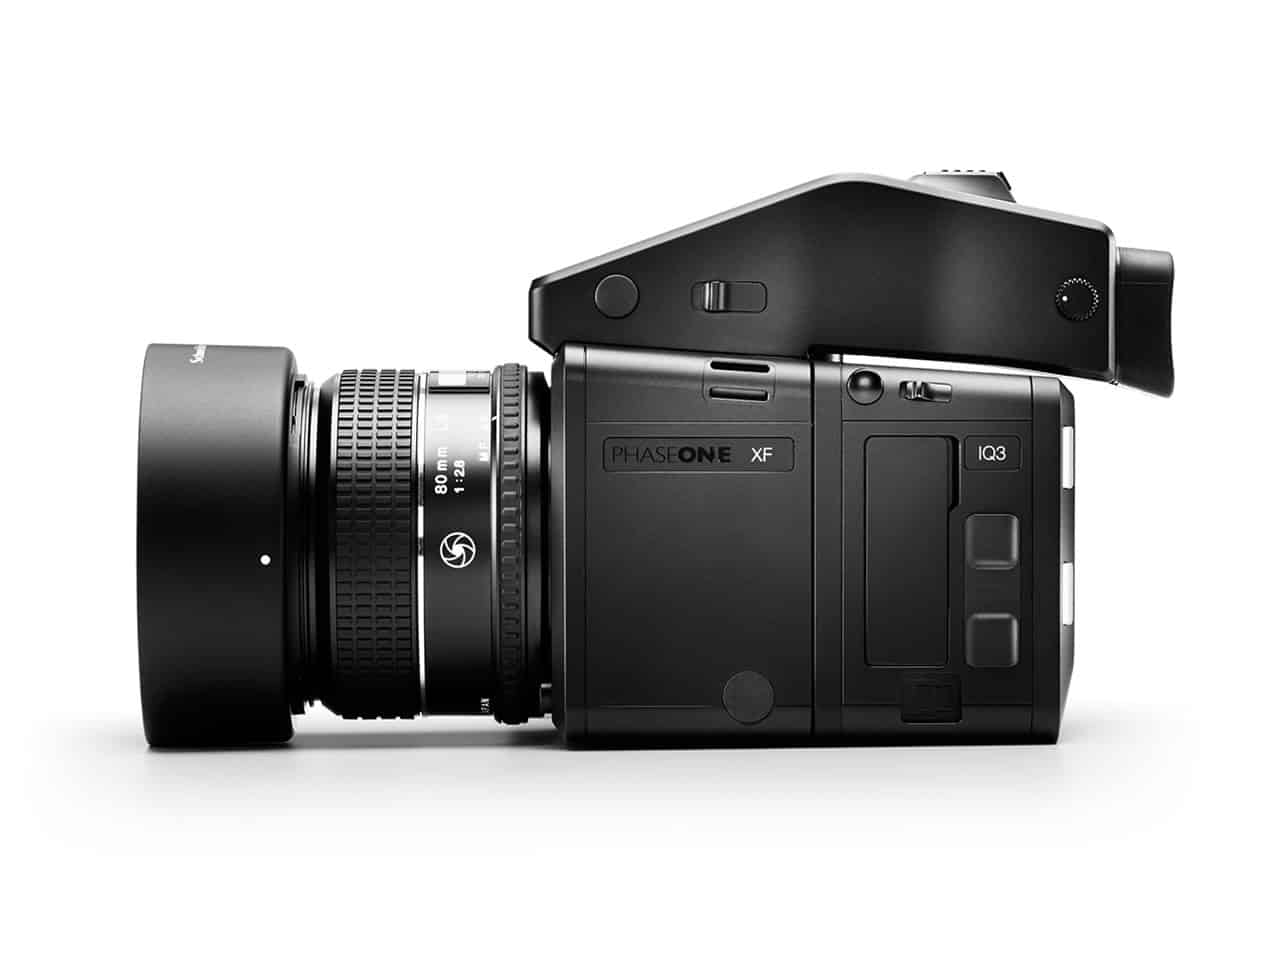 phase-one-xf-camera-3